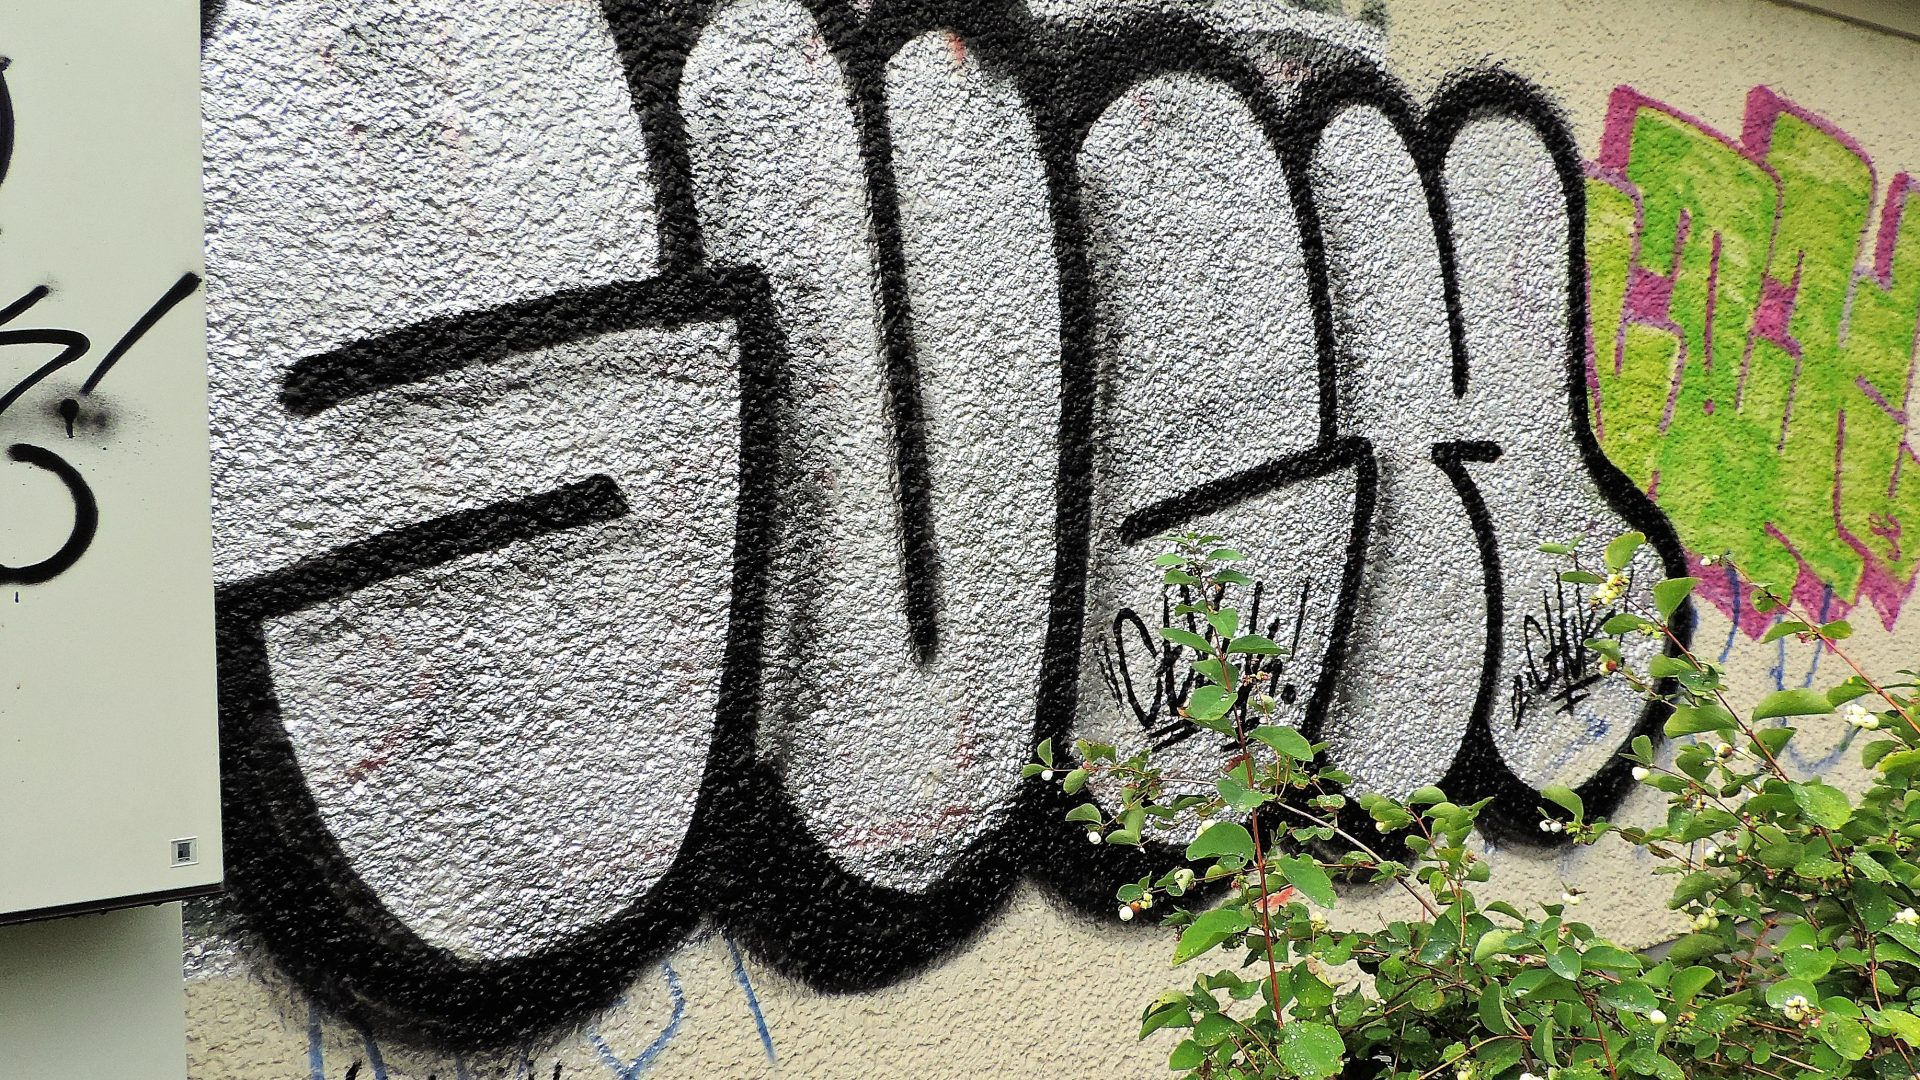 05922 | berliner mauern | berlin, graffiti, writing